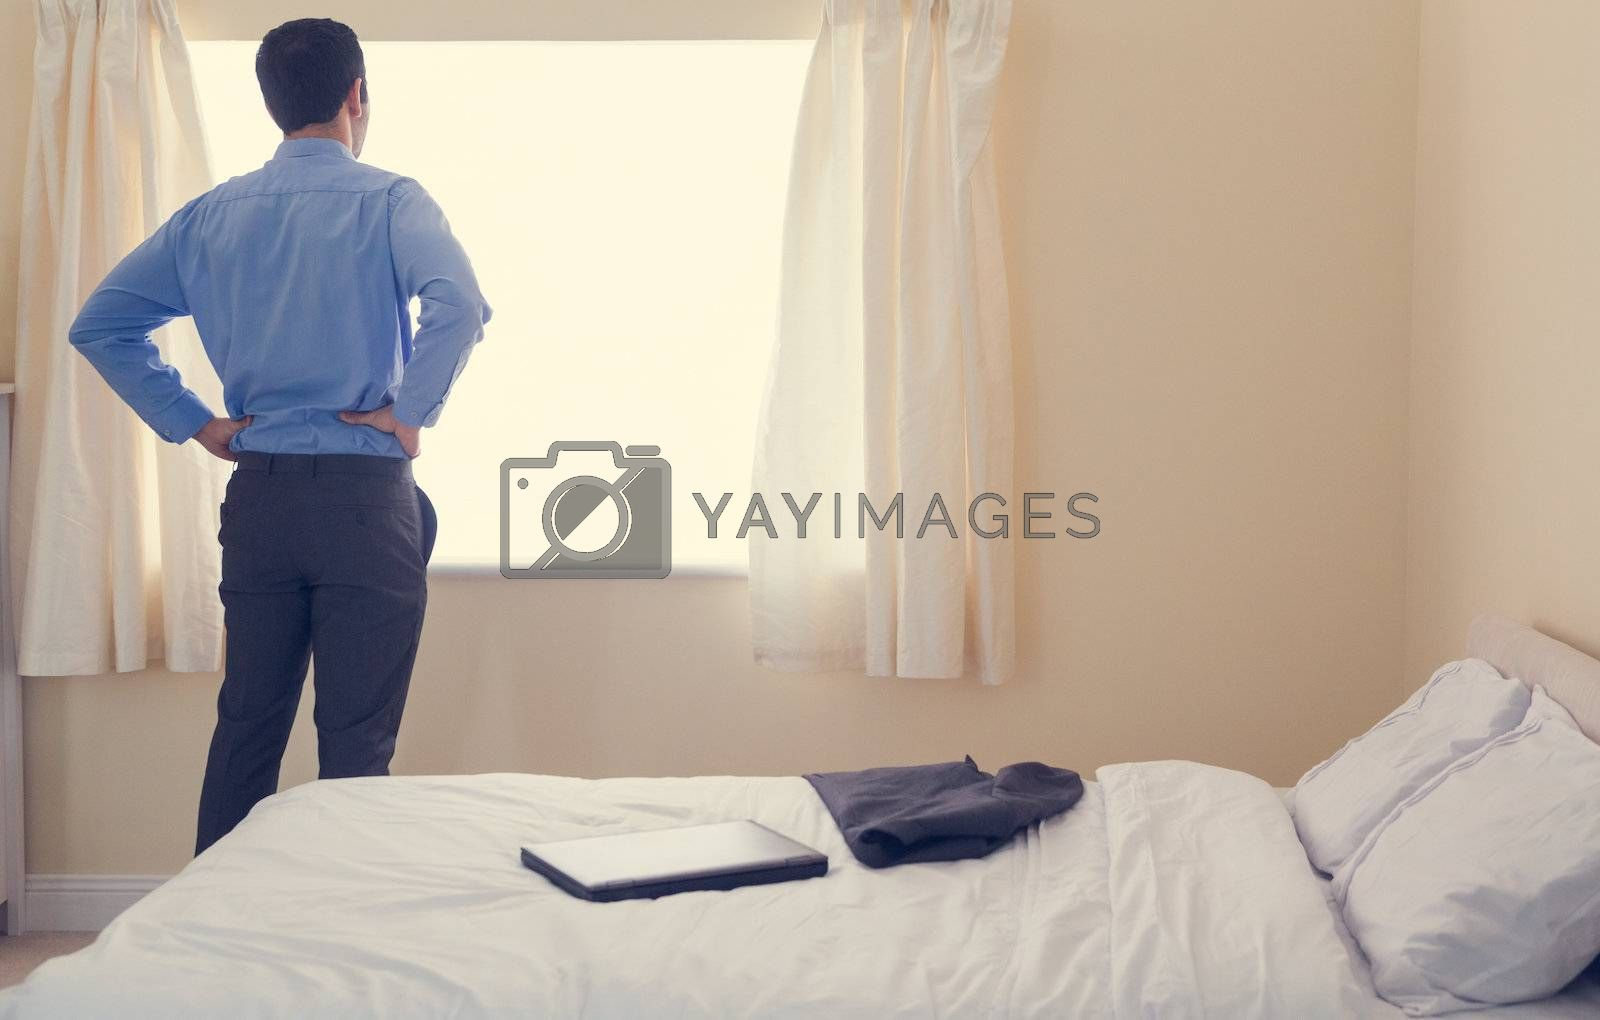 Rear view of a man standing in front of a window and looking out it by Wavebreakmedia